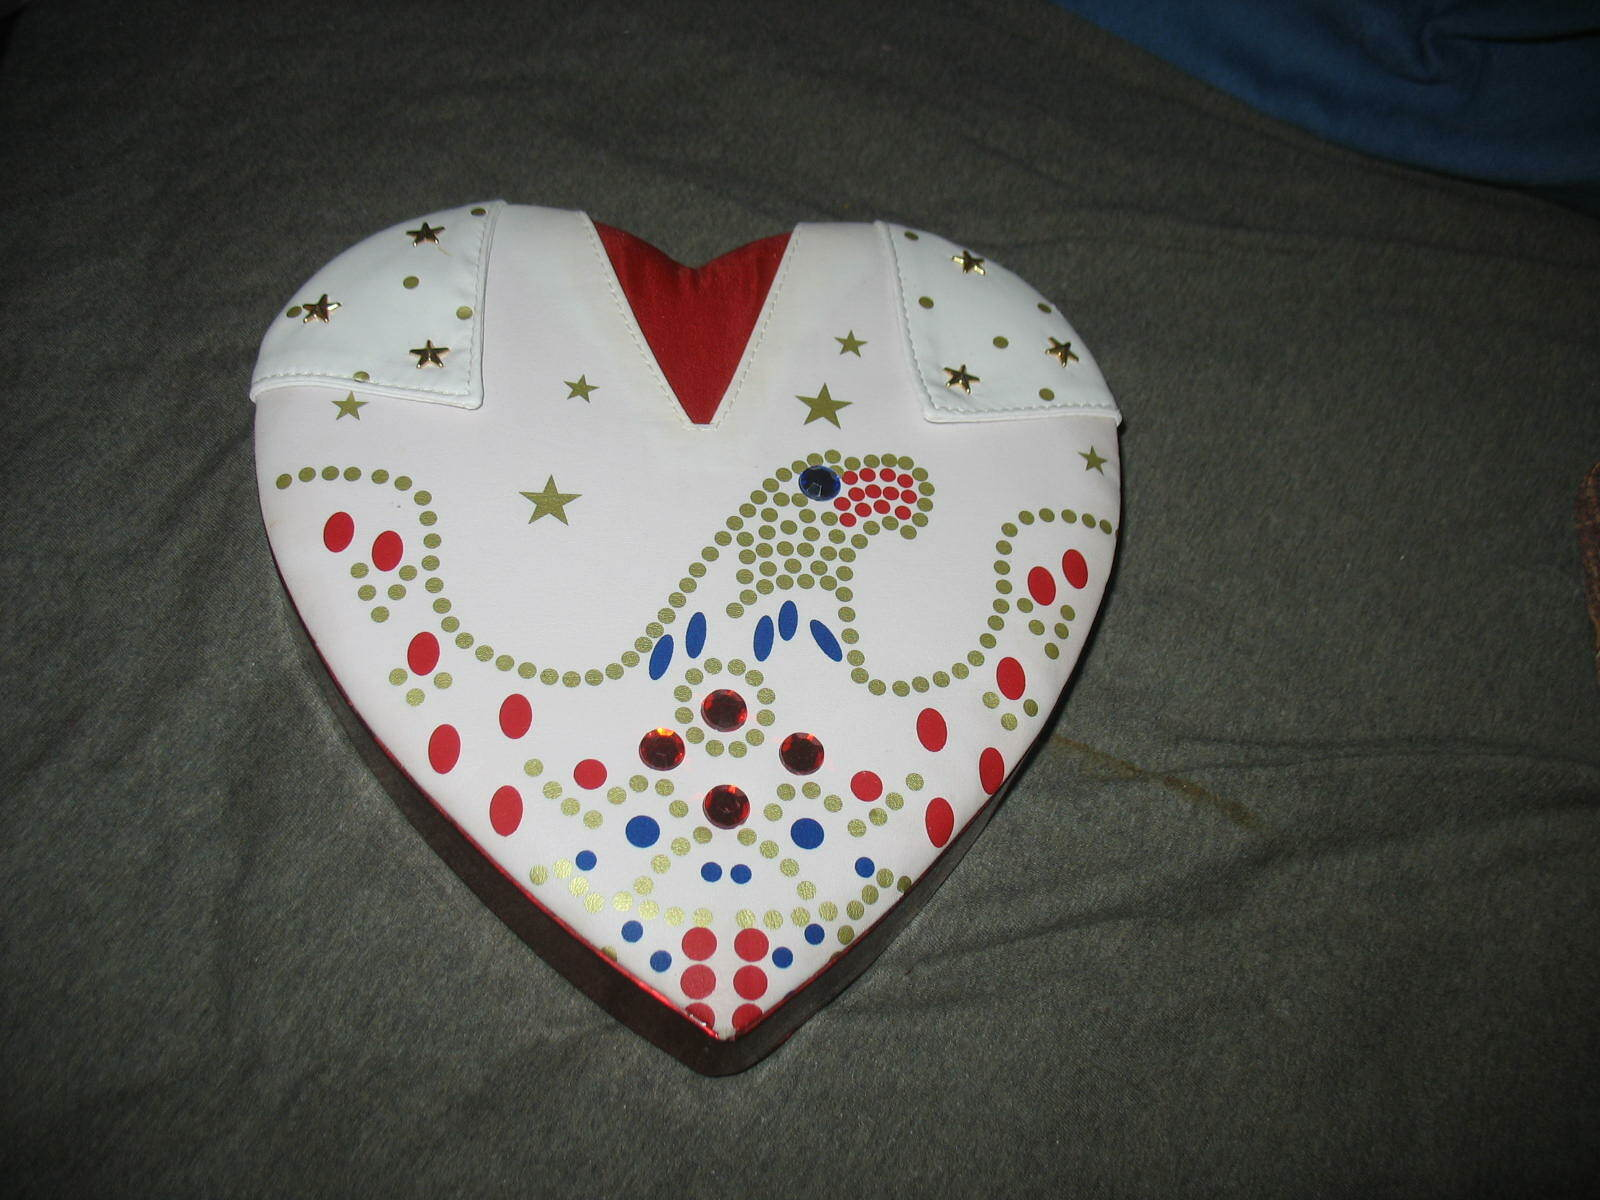 Elvis Presley Russell Stover Limited Edition Jeweled White Eagle Cape Candy Box - $10.99